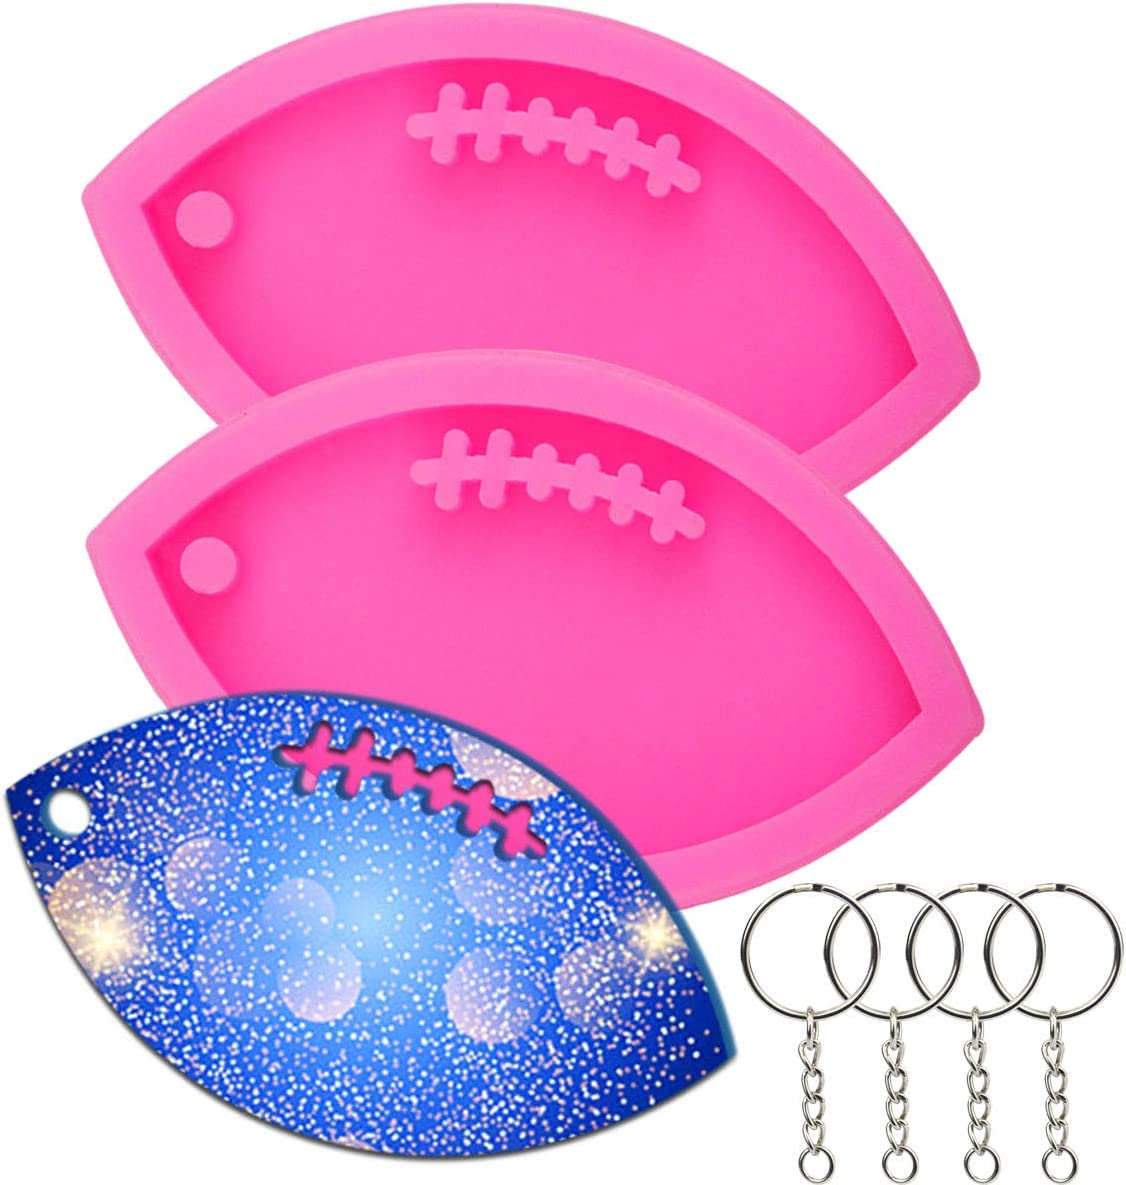 Chistepper 2 Pieces Rugby Silicone Molds Football Fondant Candy Chocolate Molds Keychain Molds with Hole for Pudding Fudge Cake Chocolate Candy Ice Cream Desserts Cupcake